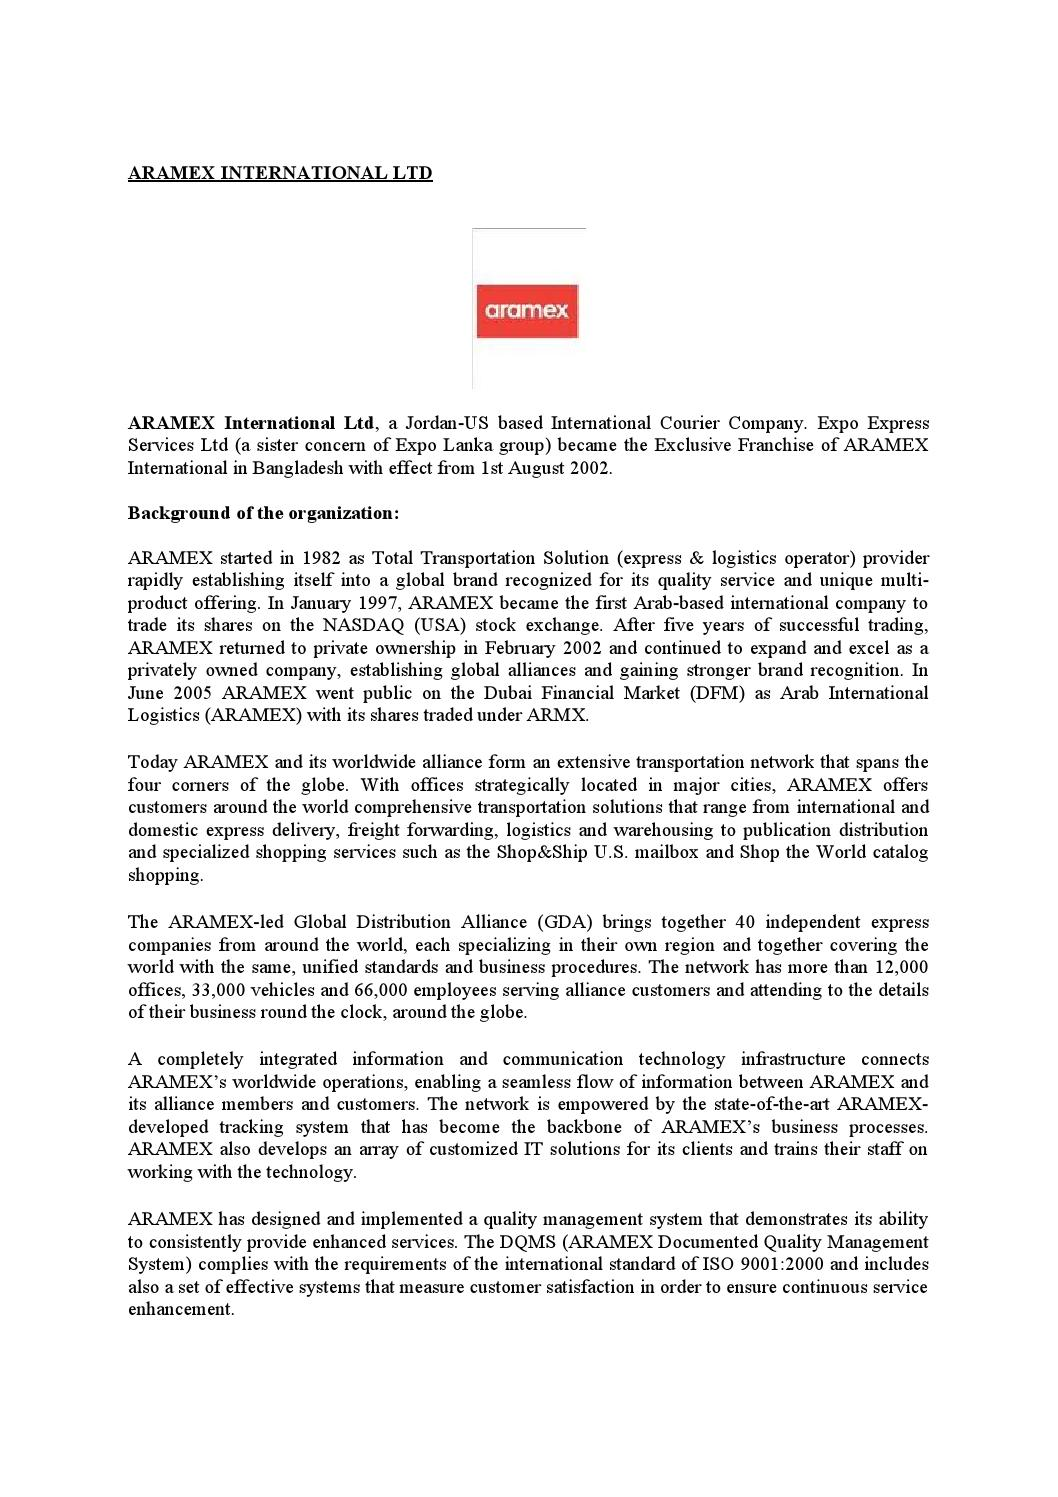 Case study on aramex international limited by Md Papon - issuu